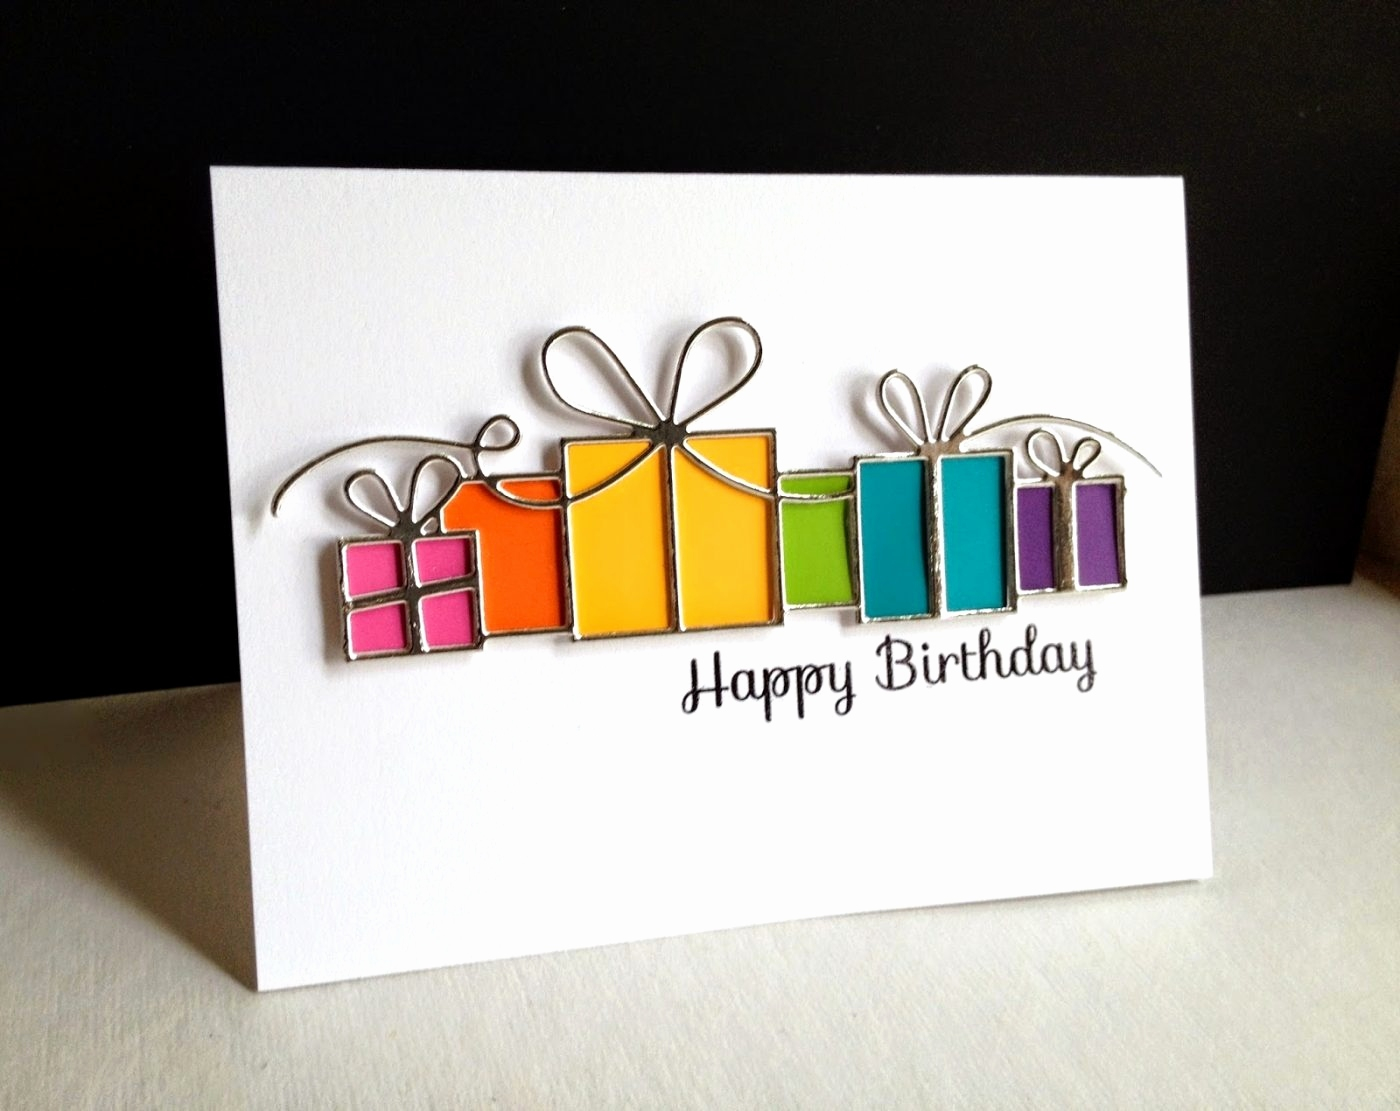 Easy Birthday Card Ideas For Friends Funny Birthday Cards Clean Inspirational Homemade Birthday Card